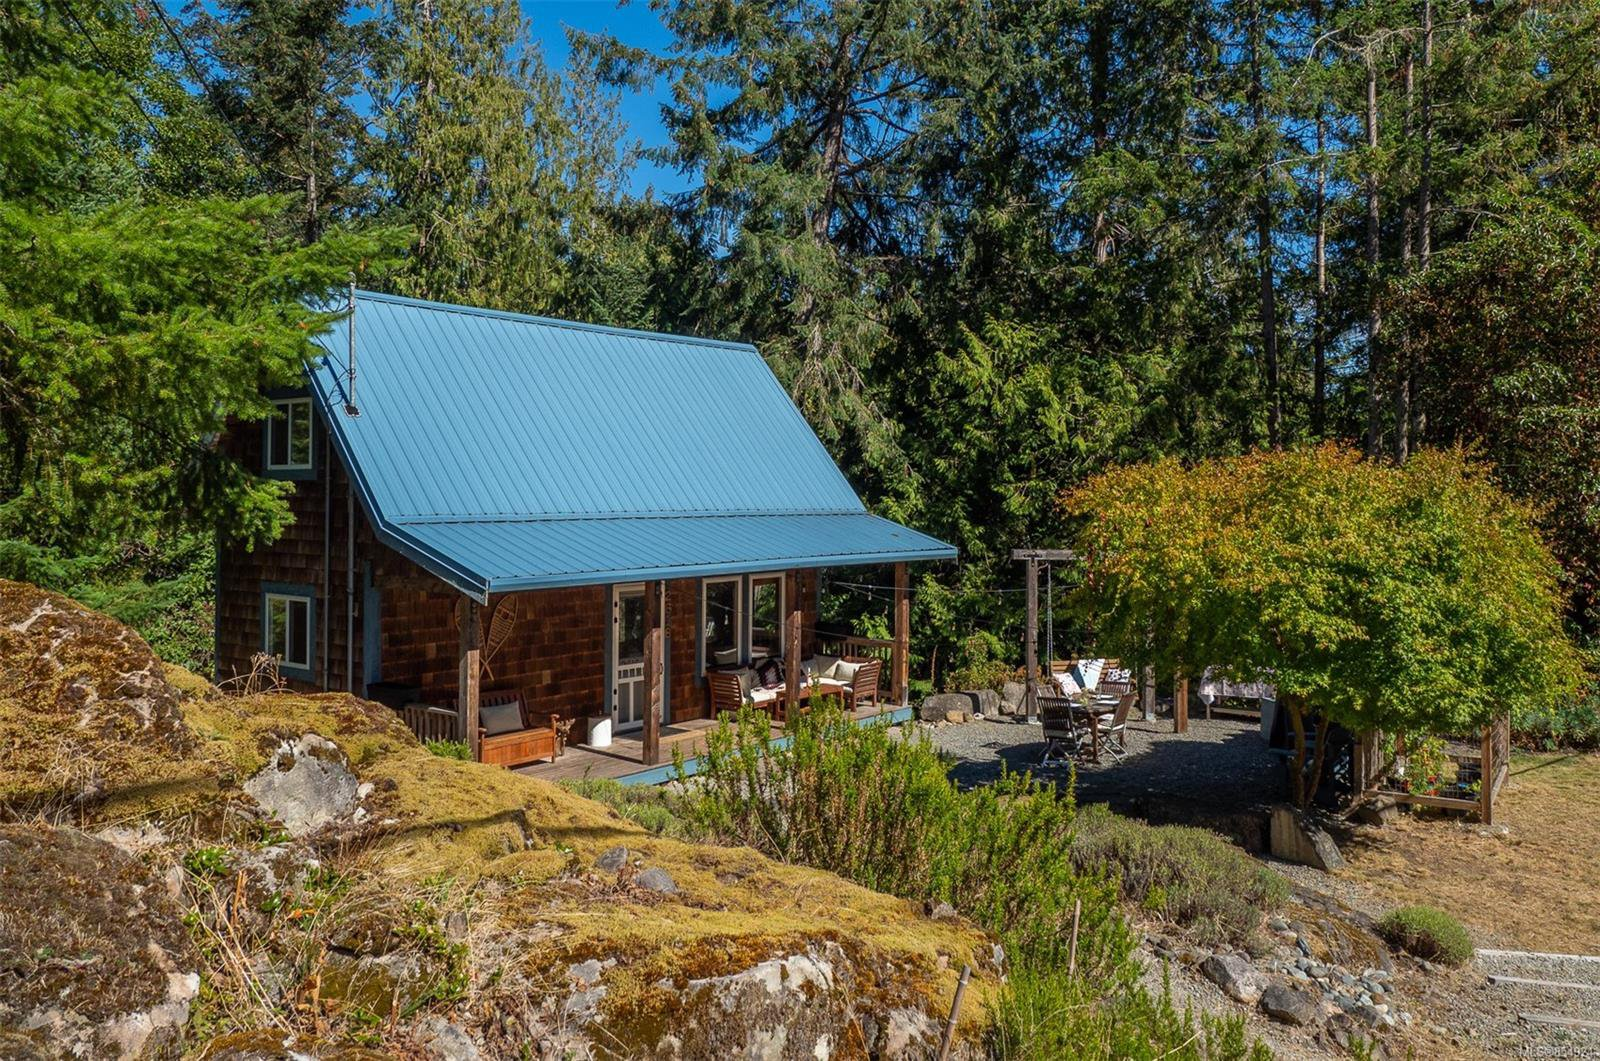 Main Photo: 2616 Spyglass Rd in : GI Pender Island Single Family Detached for sale (Gulf Islands)  : MLS®# 854924